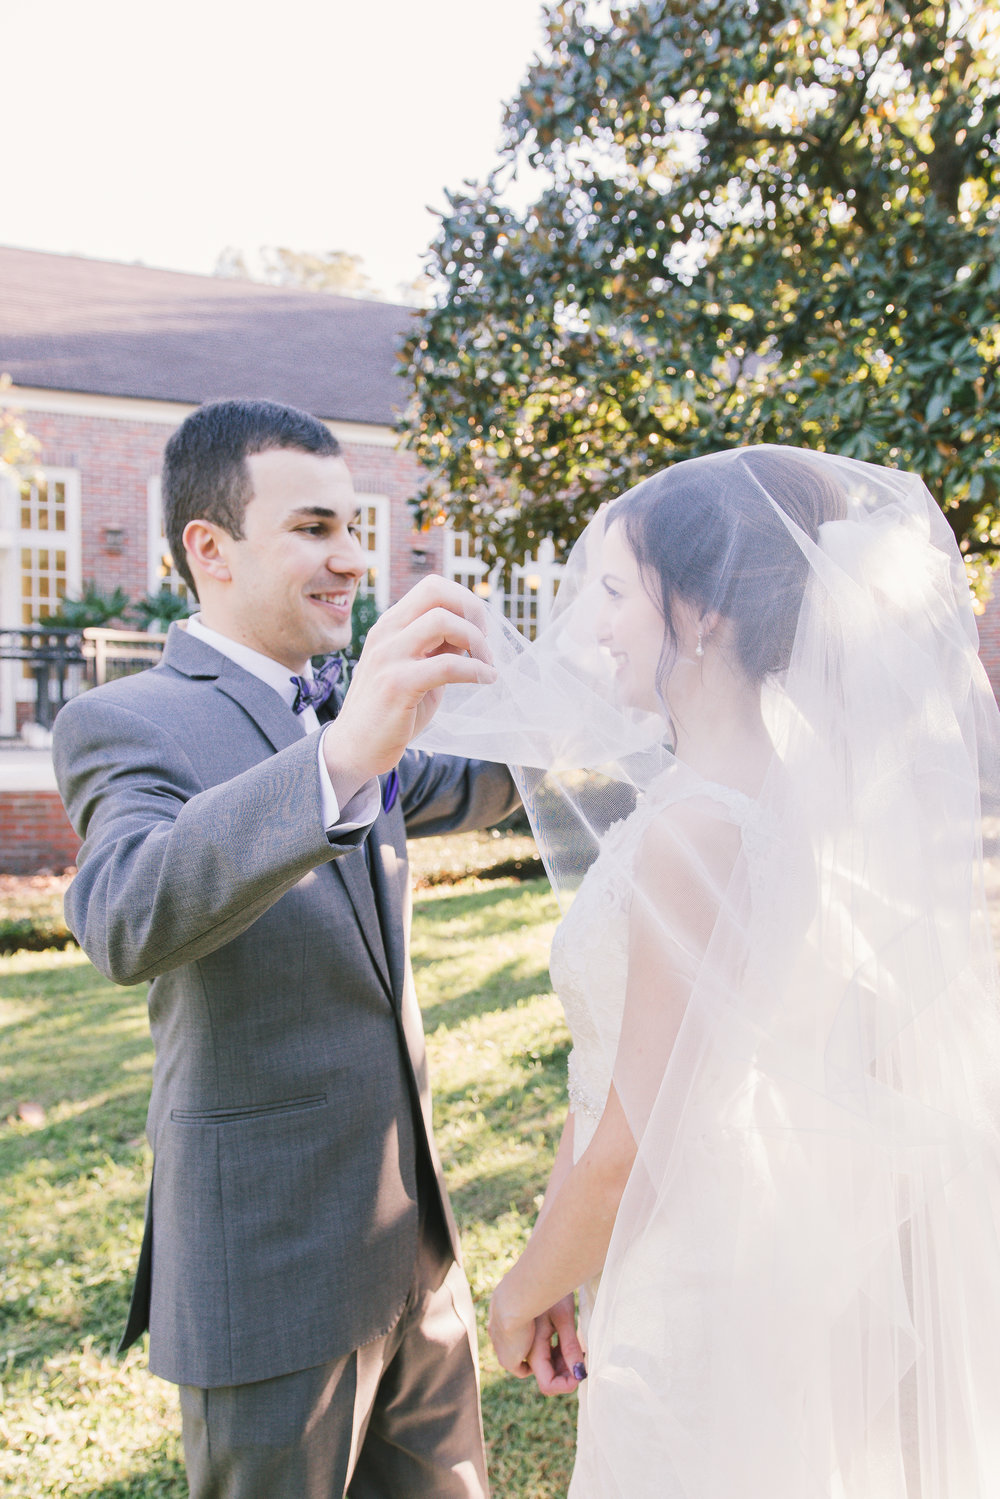 beautiful weddings, weddings, tampa weddings